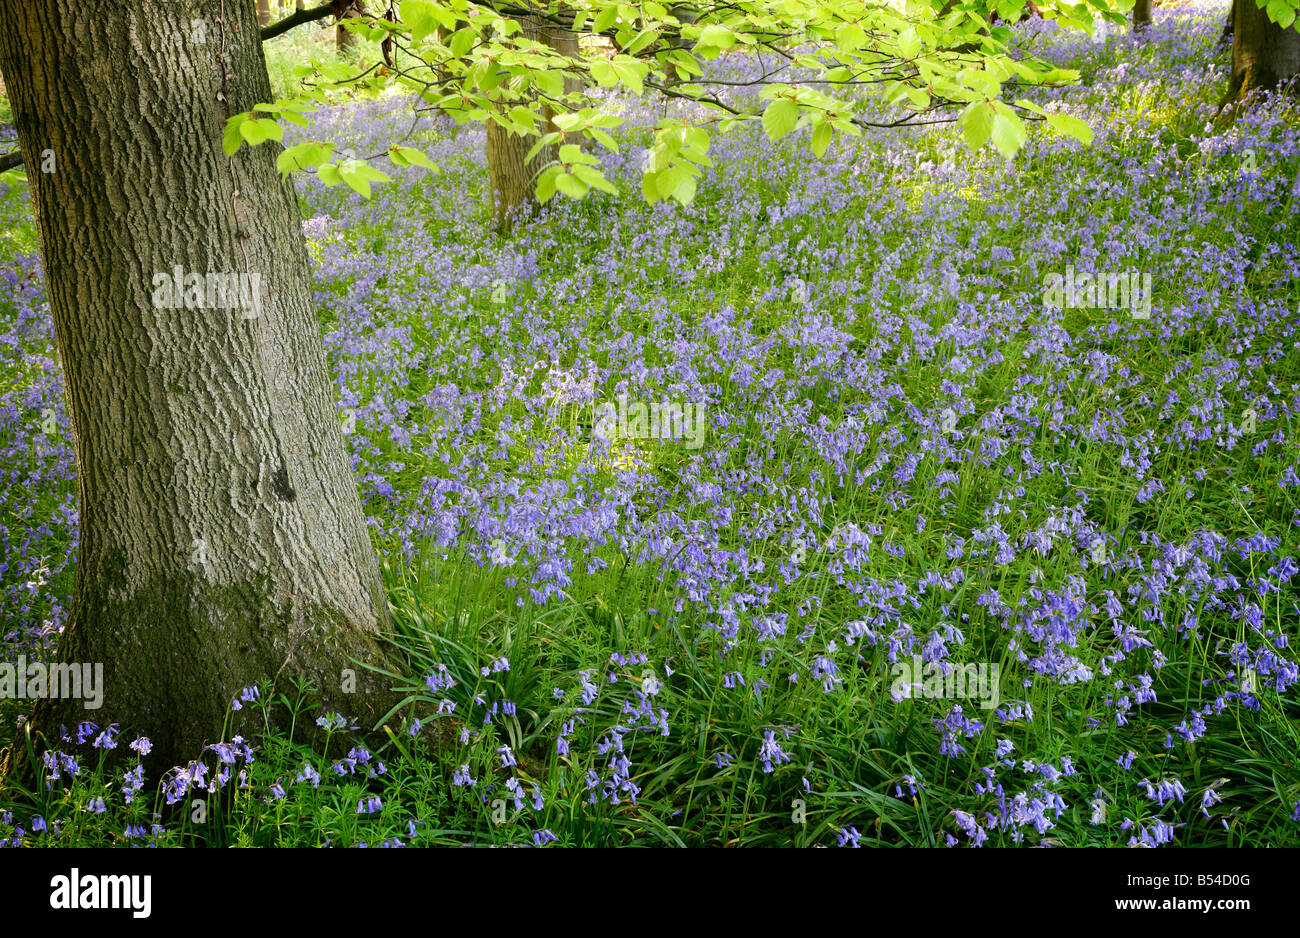 Bluebells in Beech wood Endymion non-scriptus - Stock Image